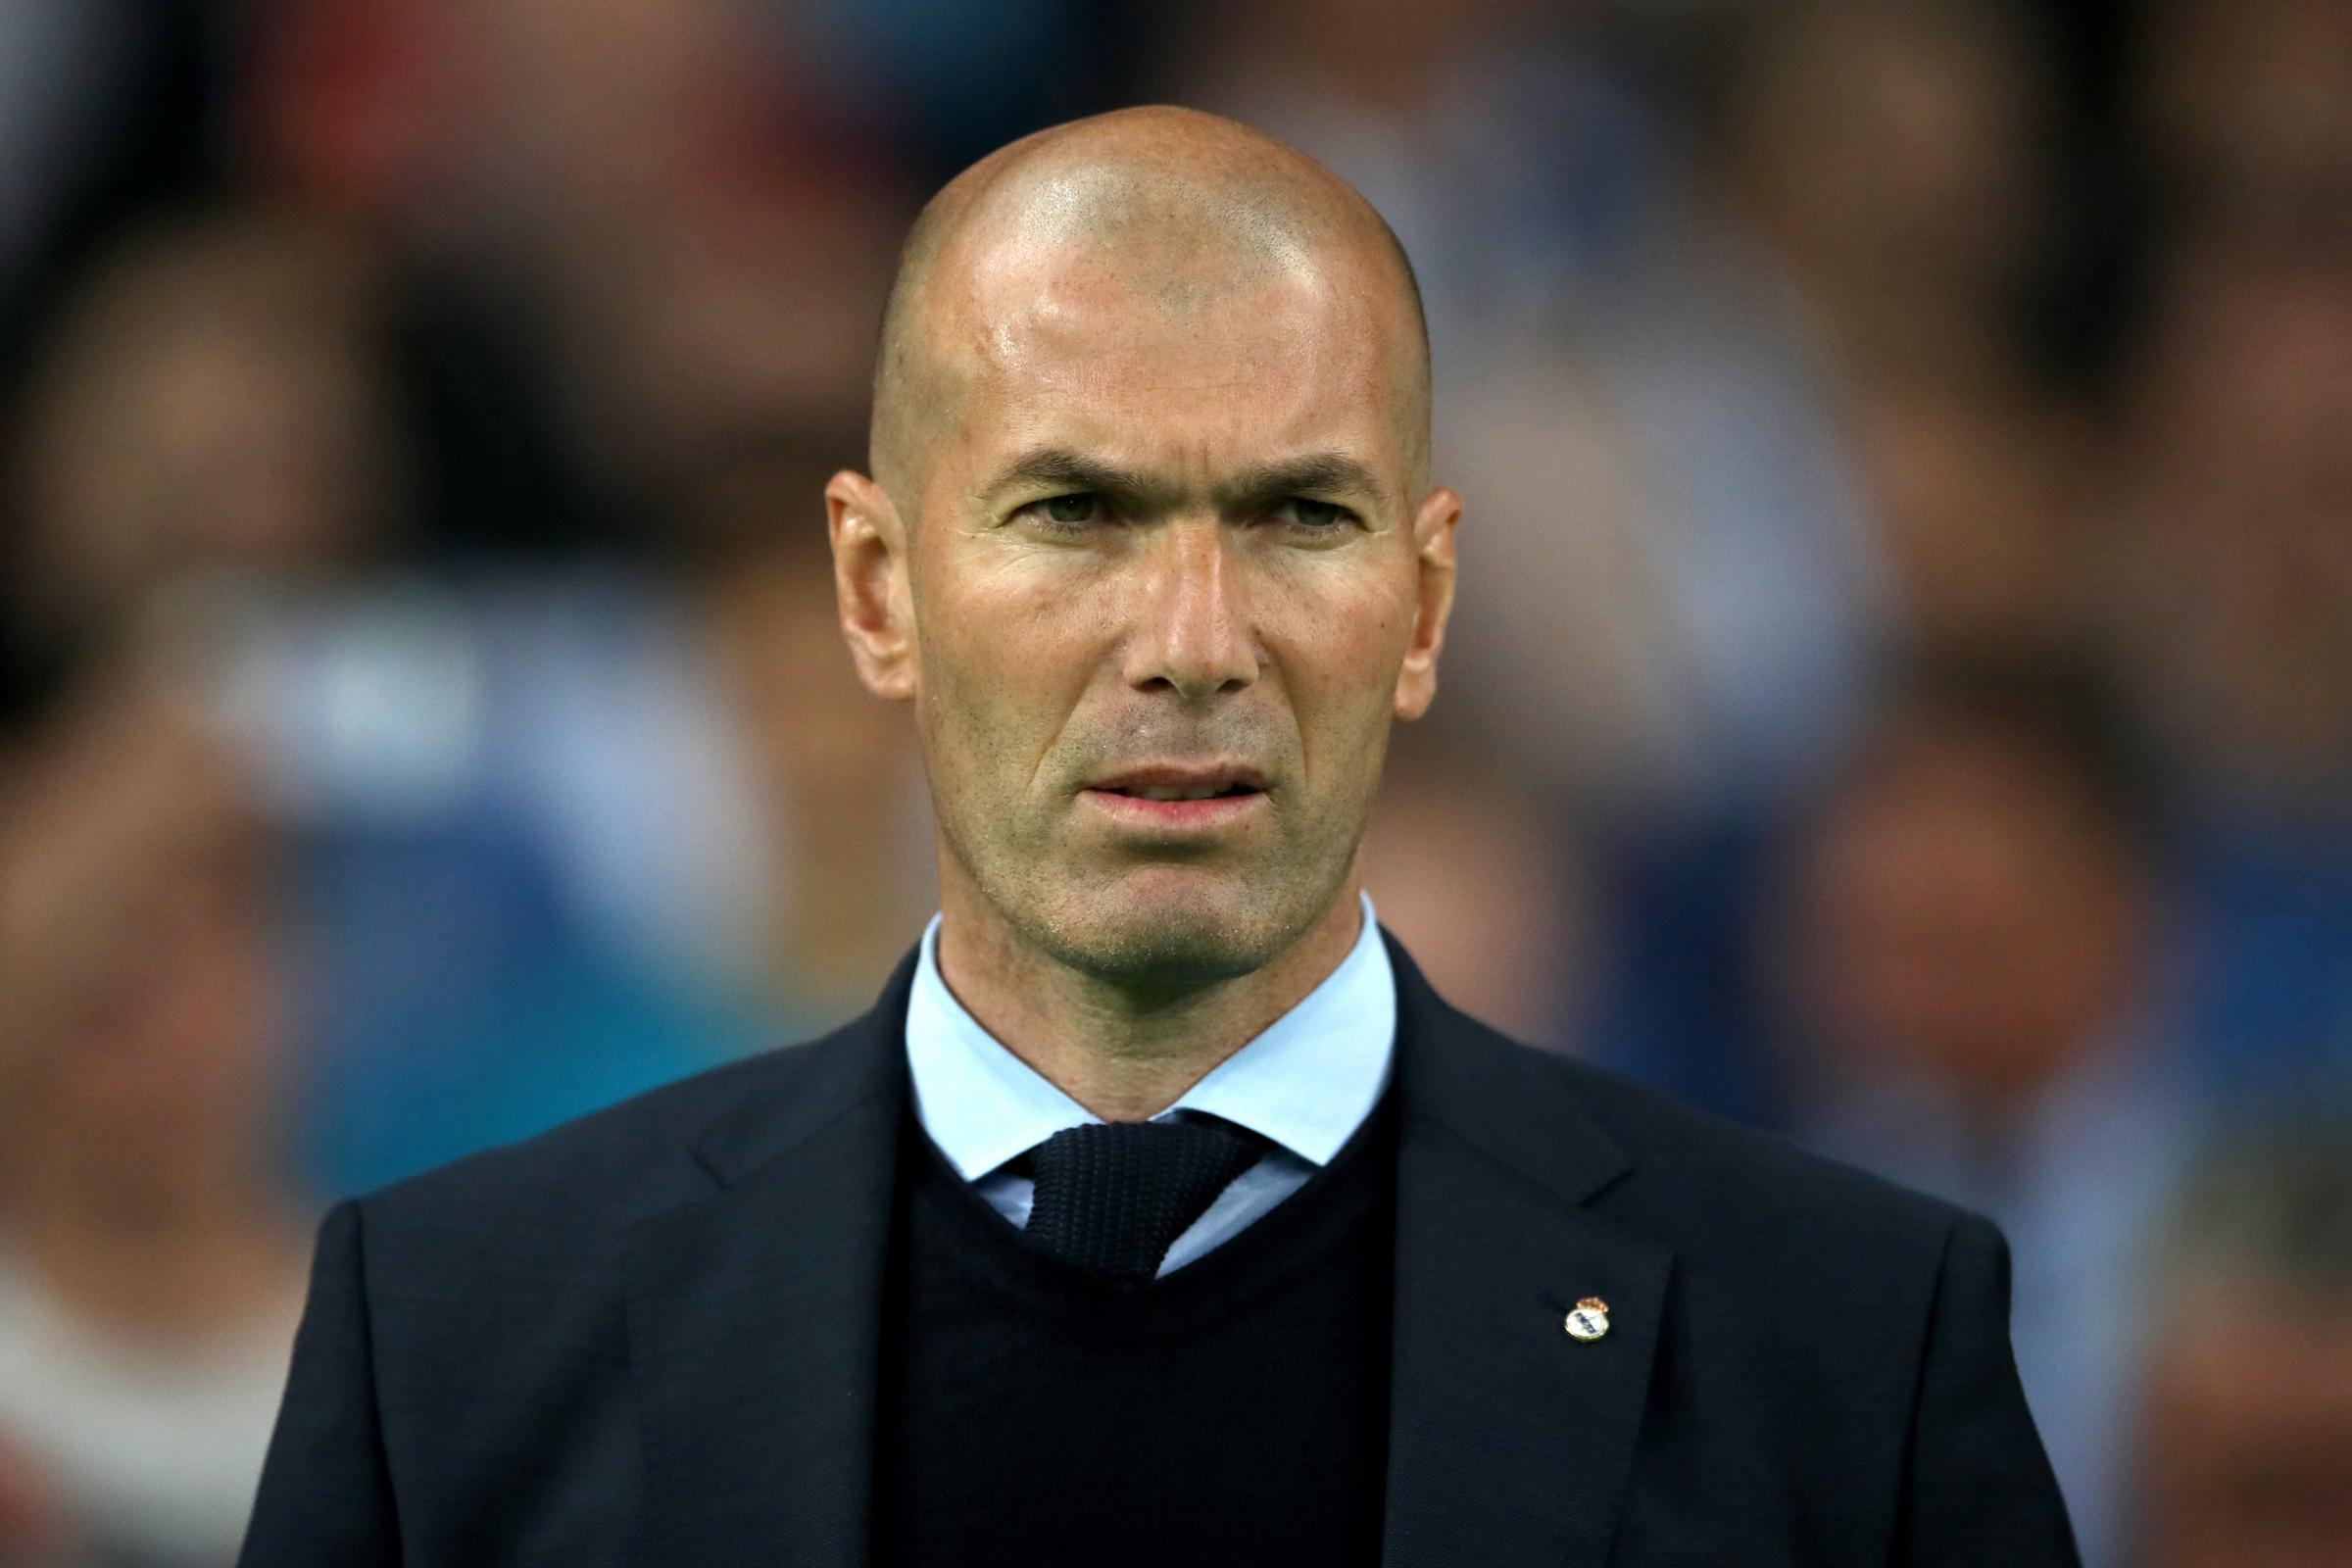 Zinedine Zidane, pictured, has been tipped to replace Maurizio Sarri